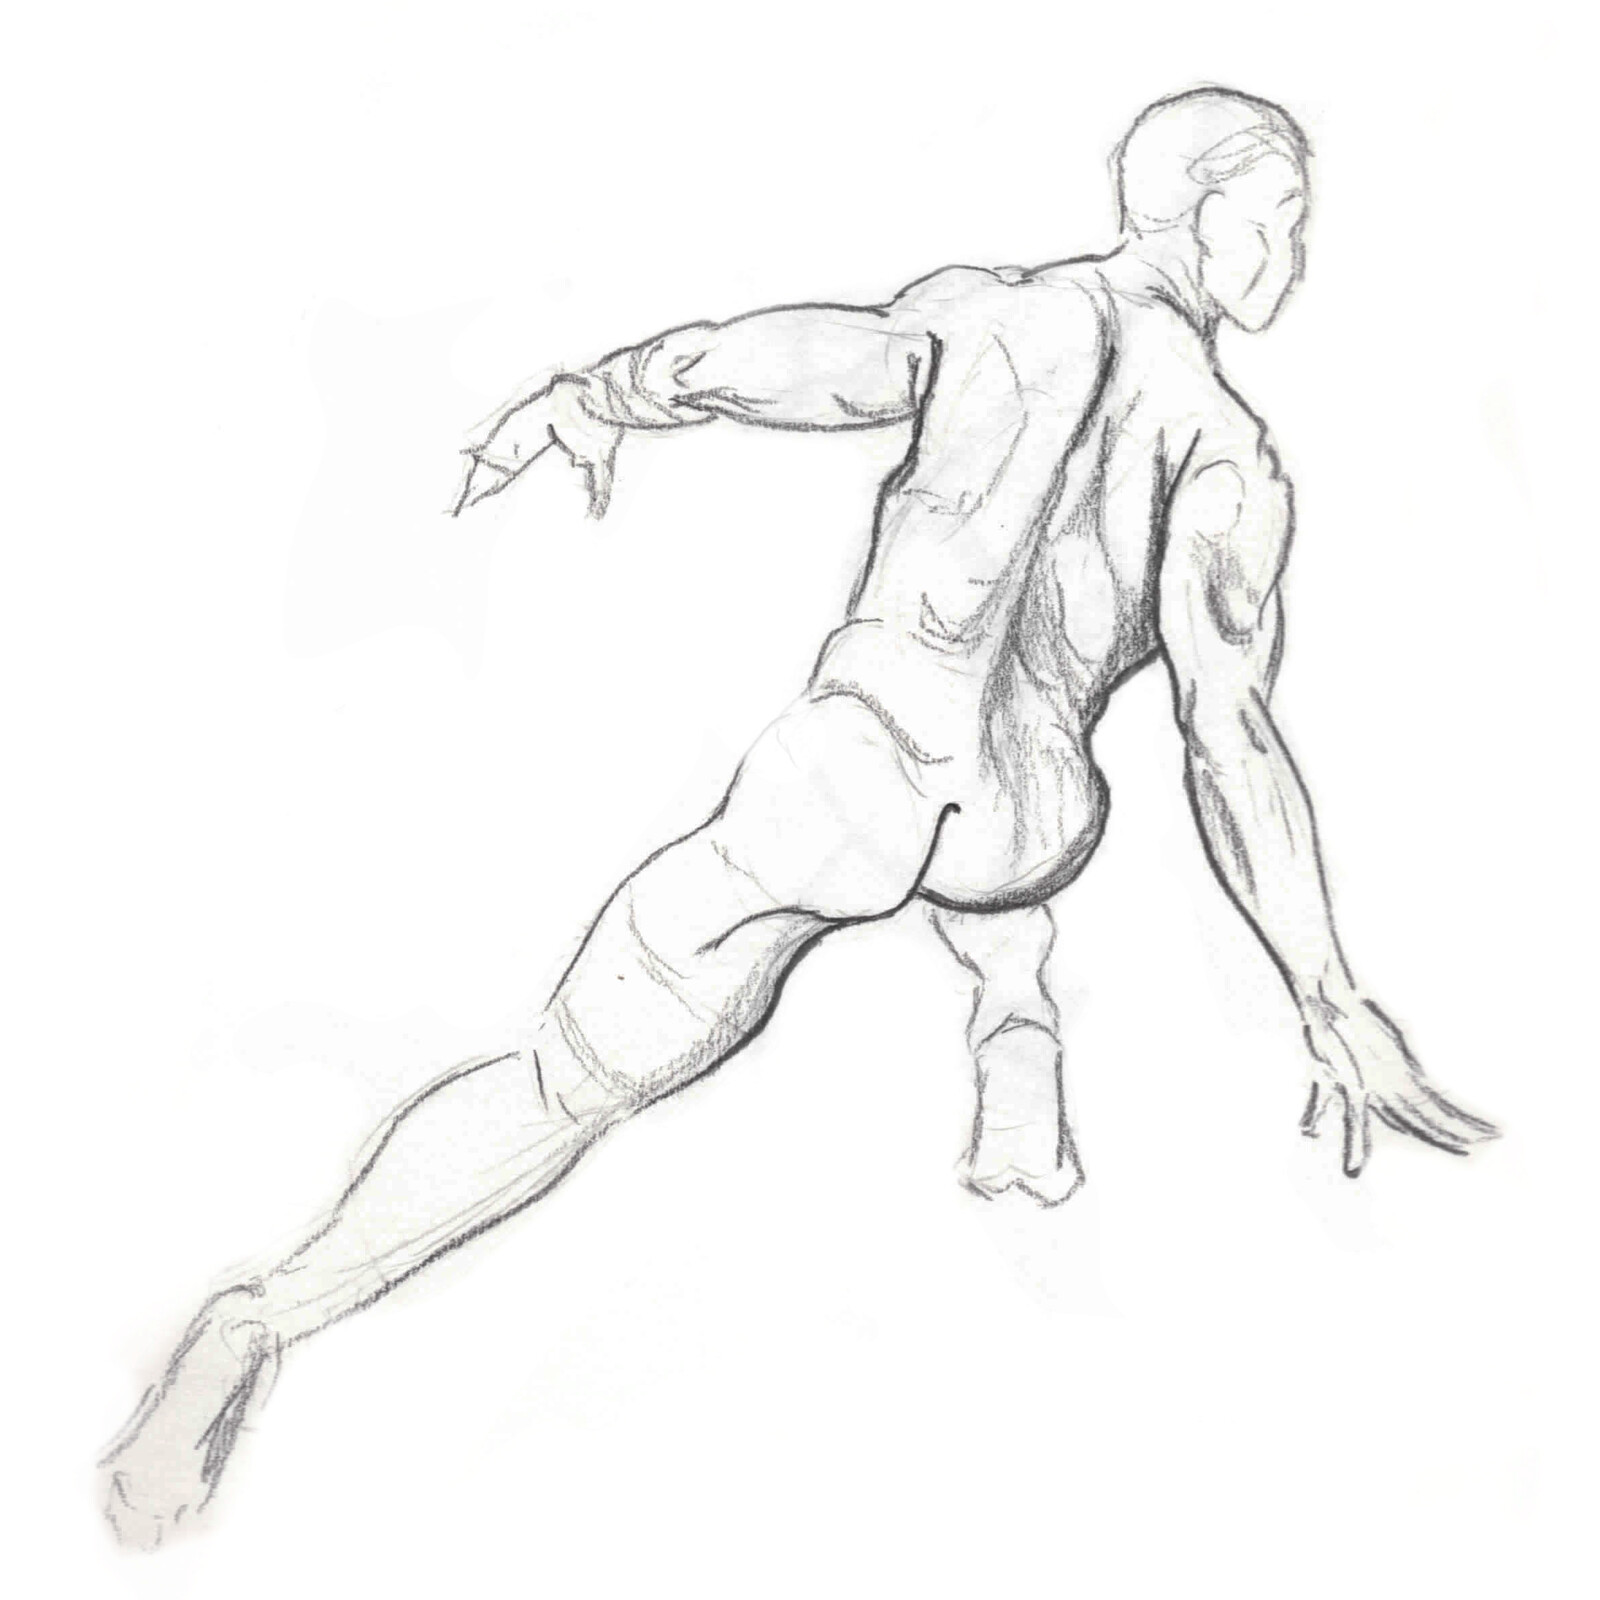 Life Drawing - The Male Figure